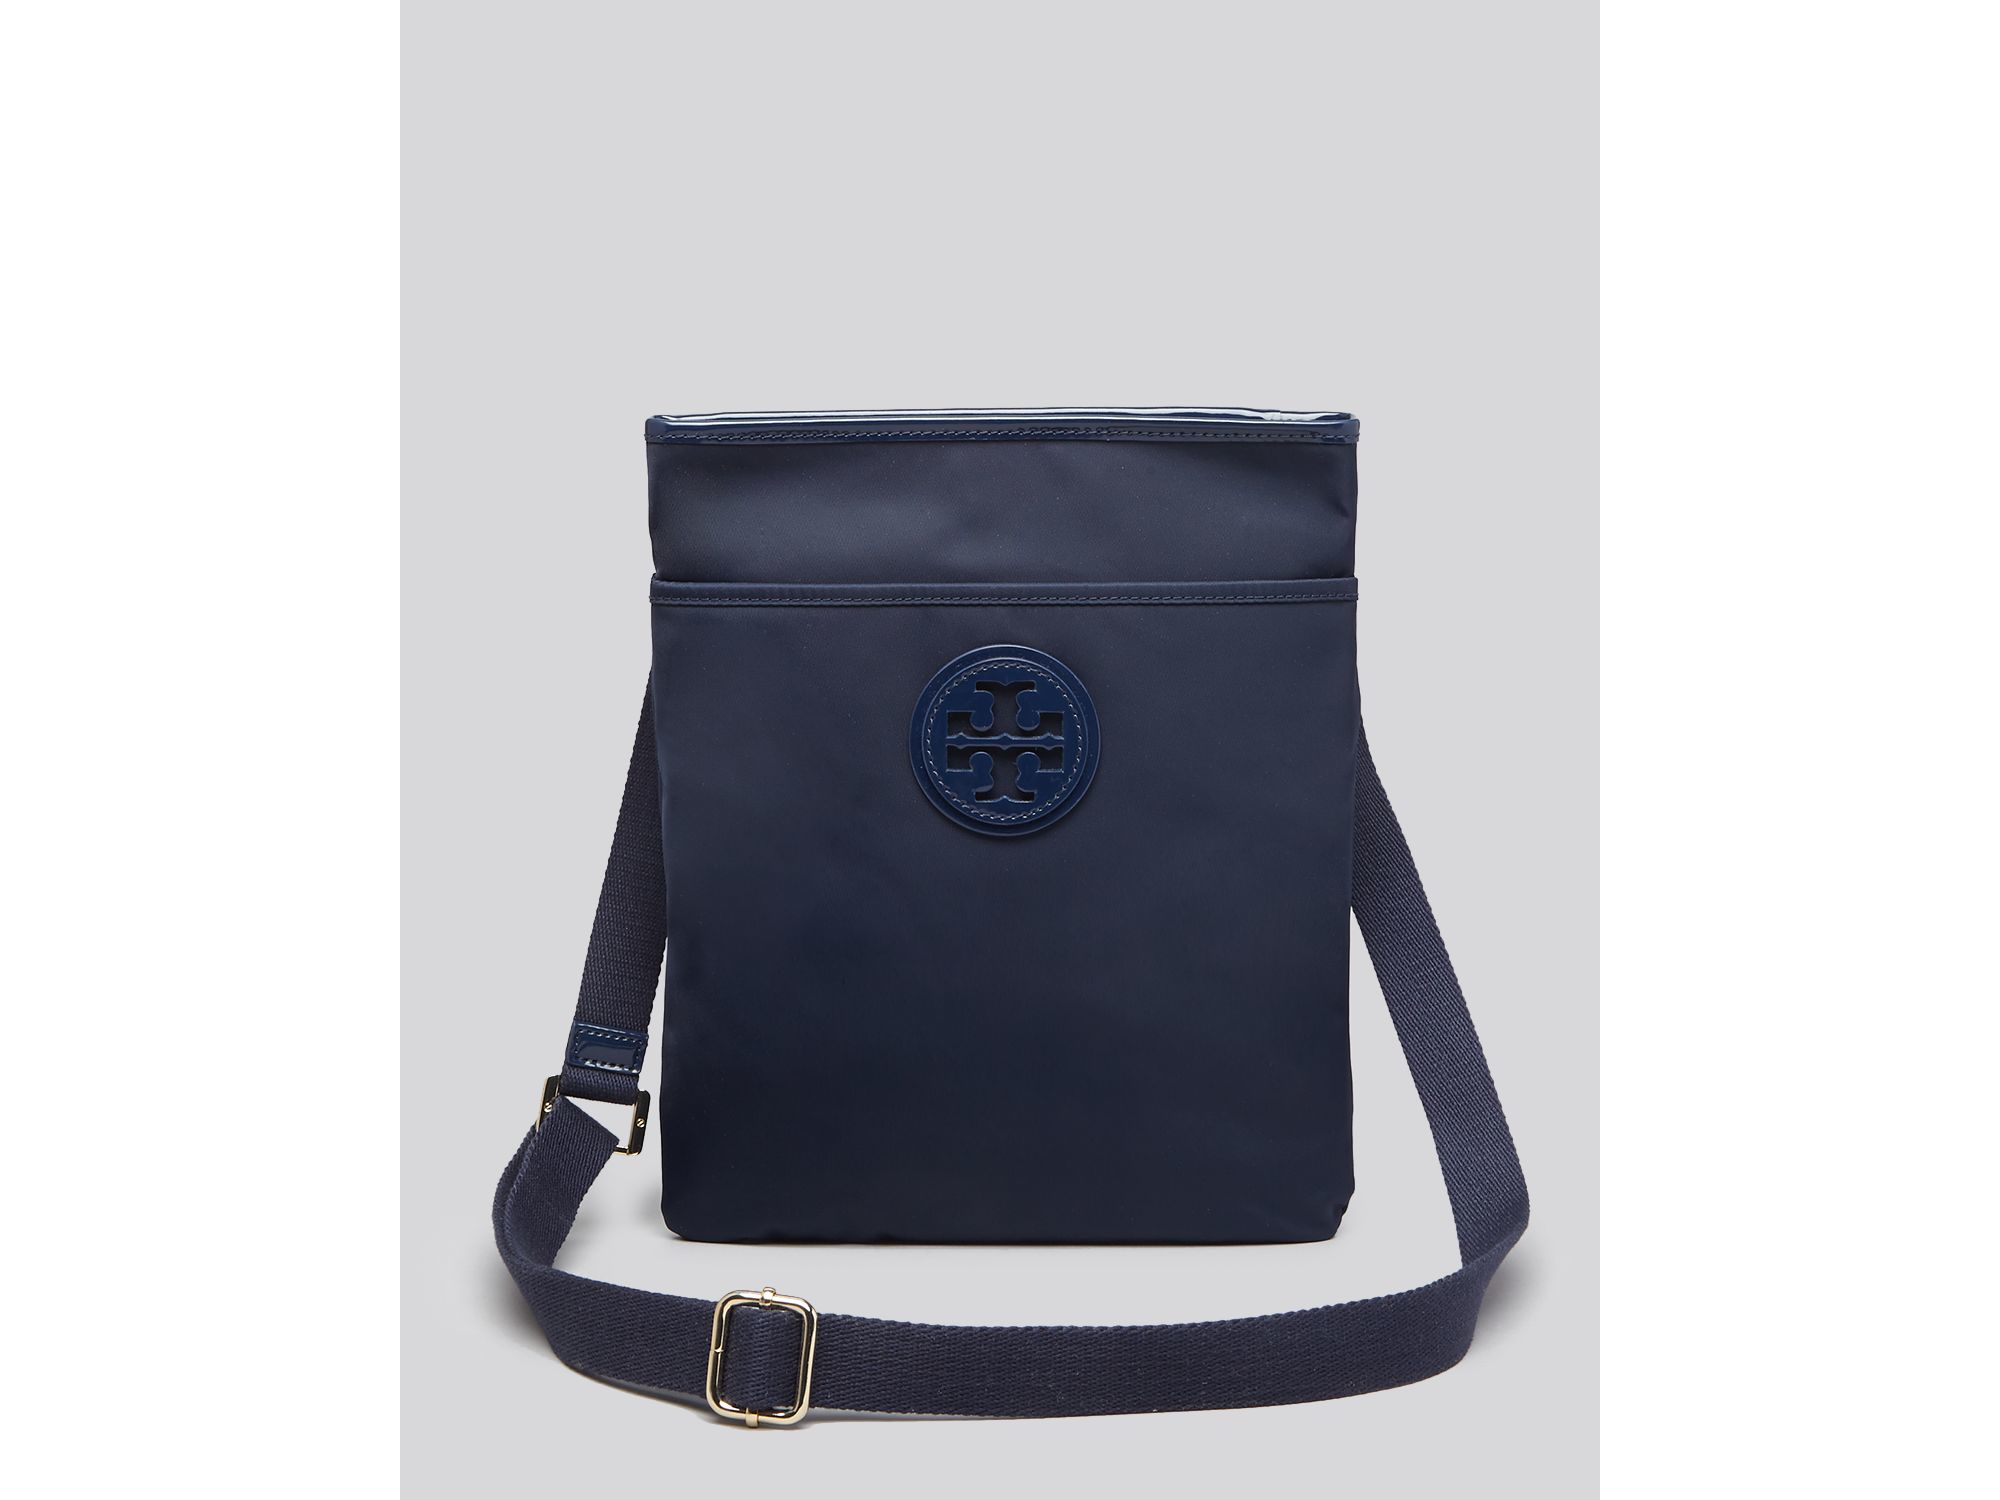 7dc92b7912b4 Tory Burch Nylon Ella Swingpack Crossbody in Blue - Lyst